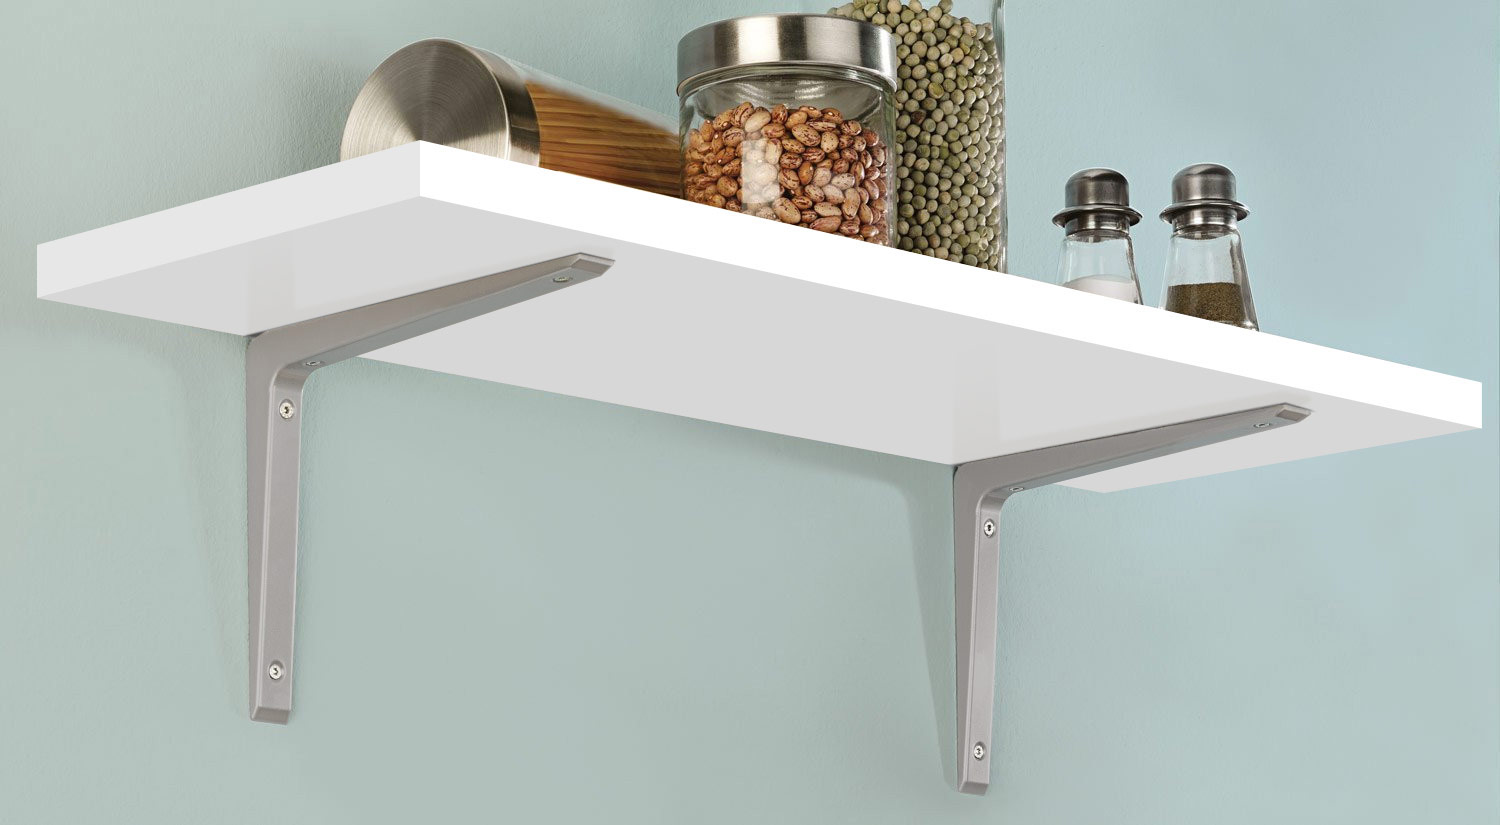 Metal Shelf Brackets - PURIST metal as kitchen shelf